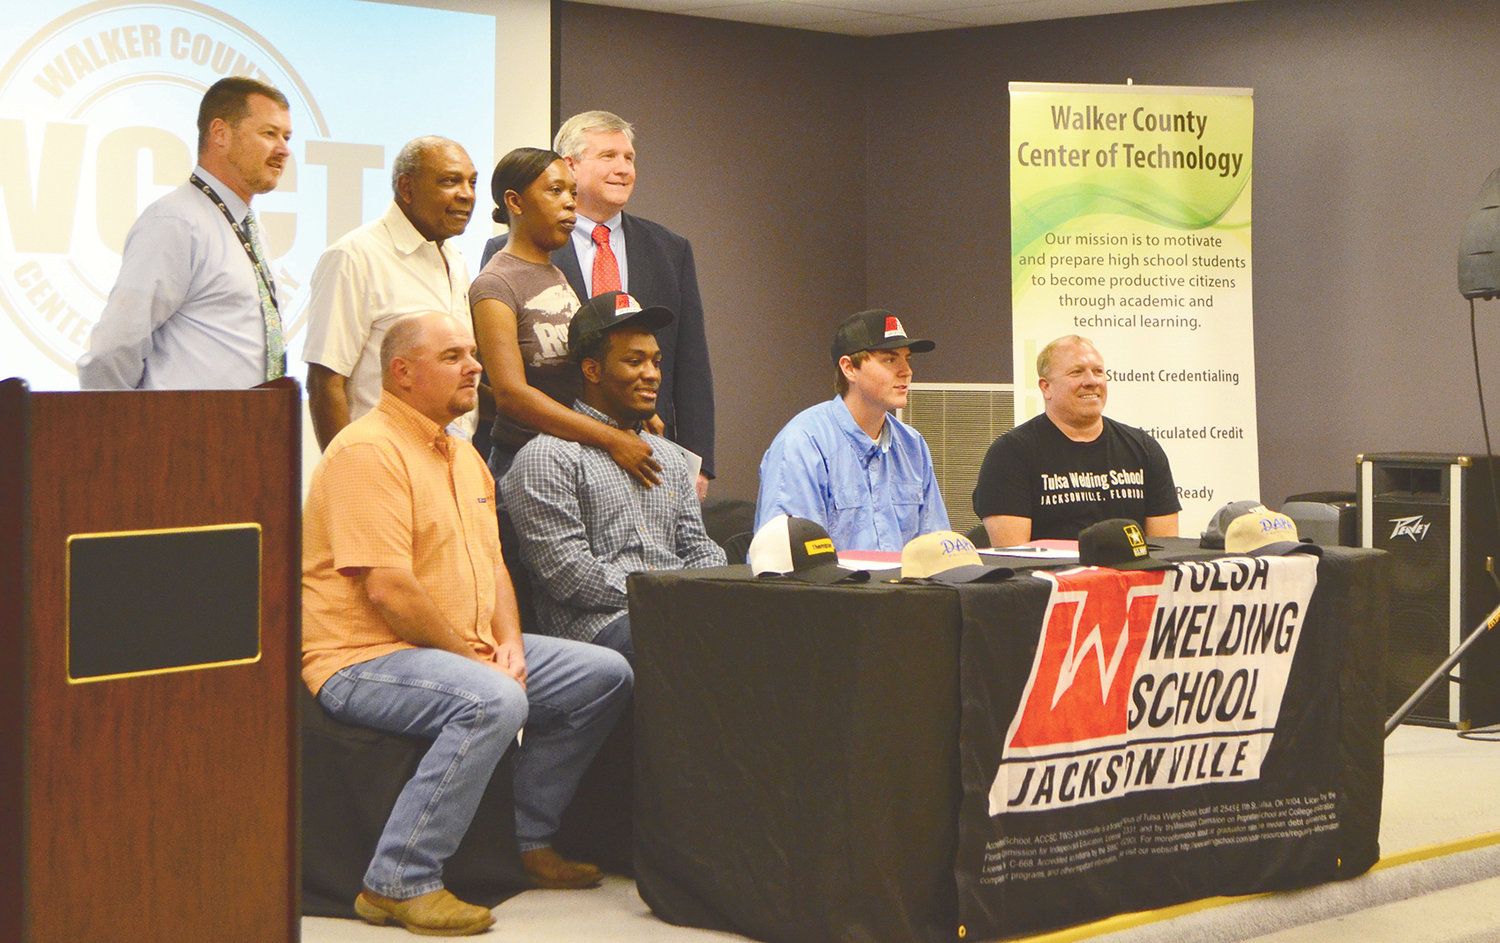 A group shot is taken as Cameron Lambert of Jasper High School and Cody Hall of Carbon Hill High School sign with Tulsa School of Welding on Thursday.